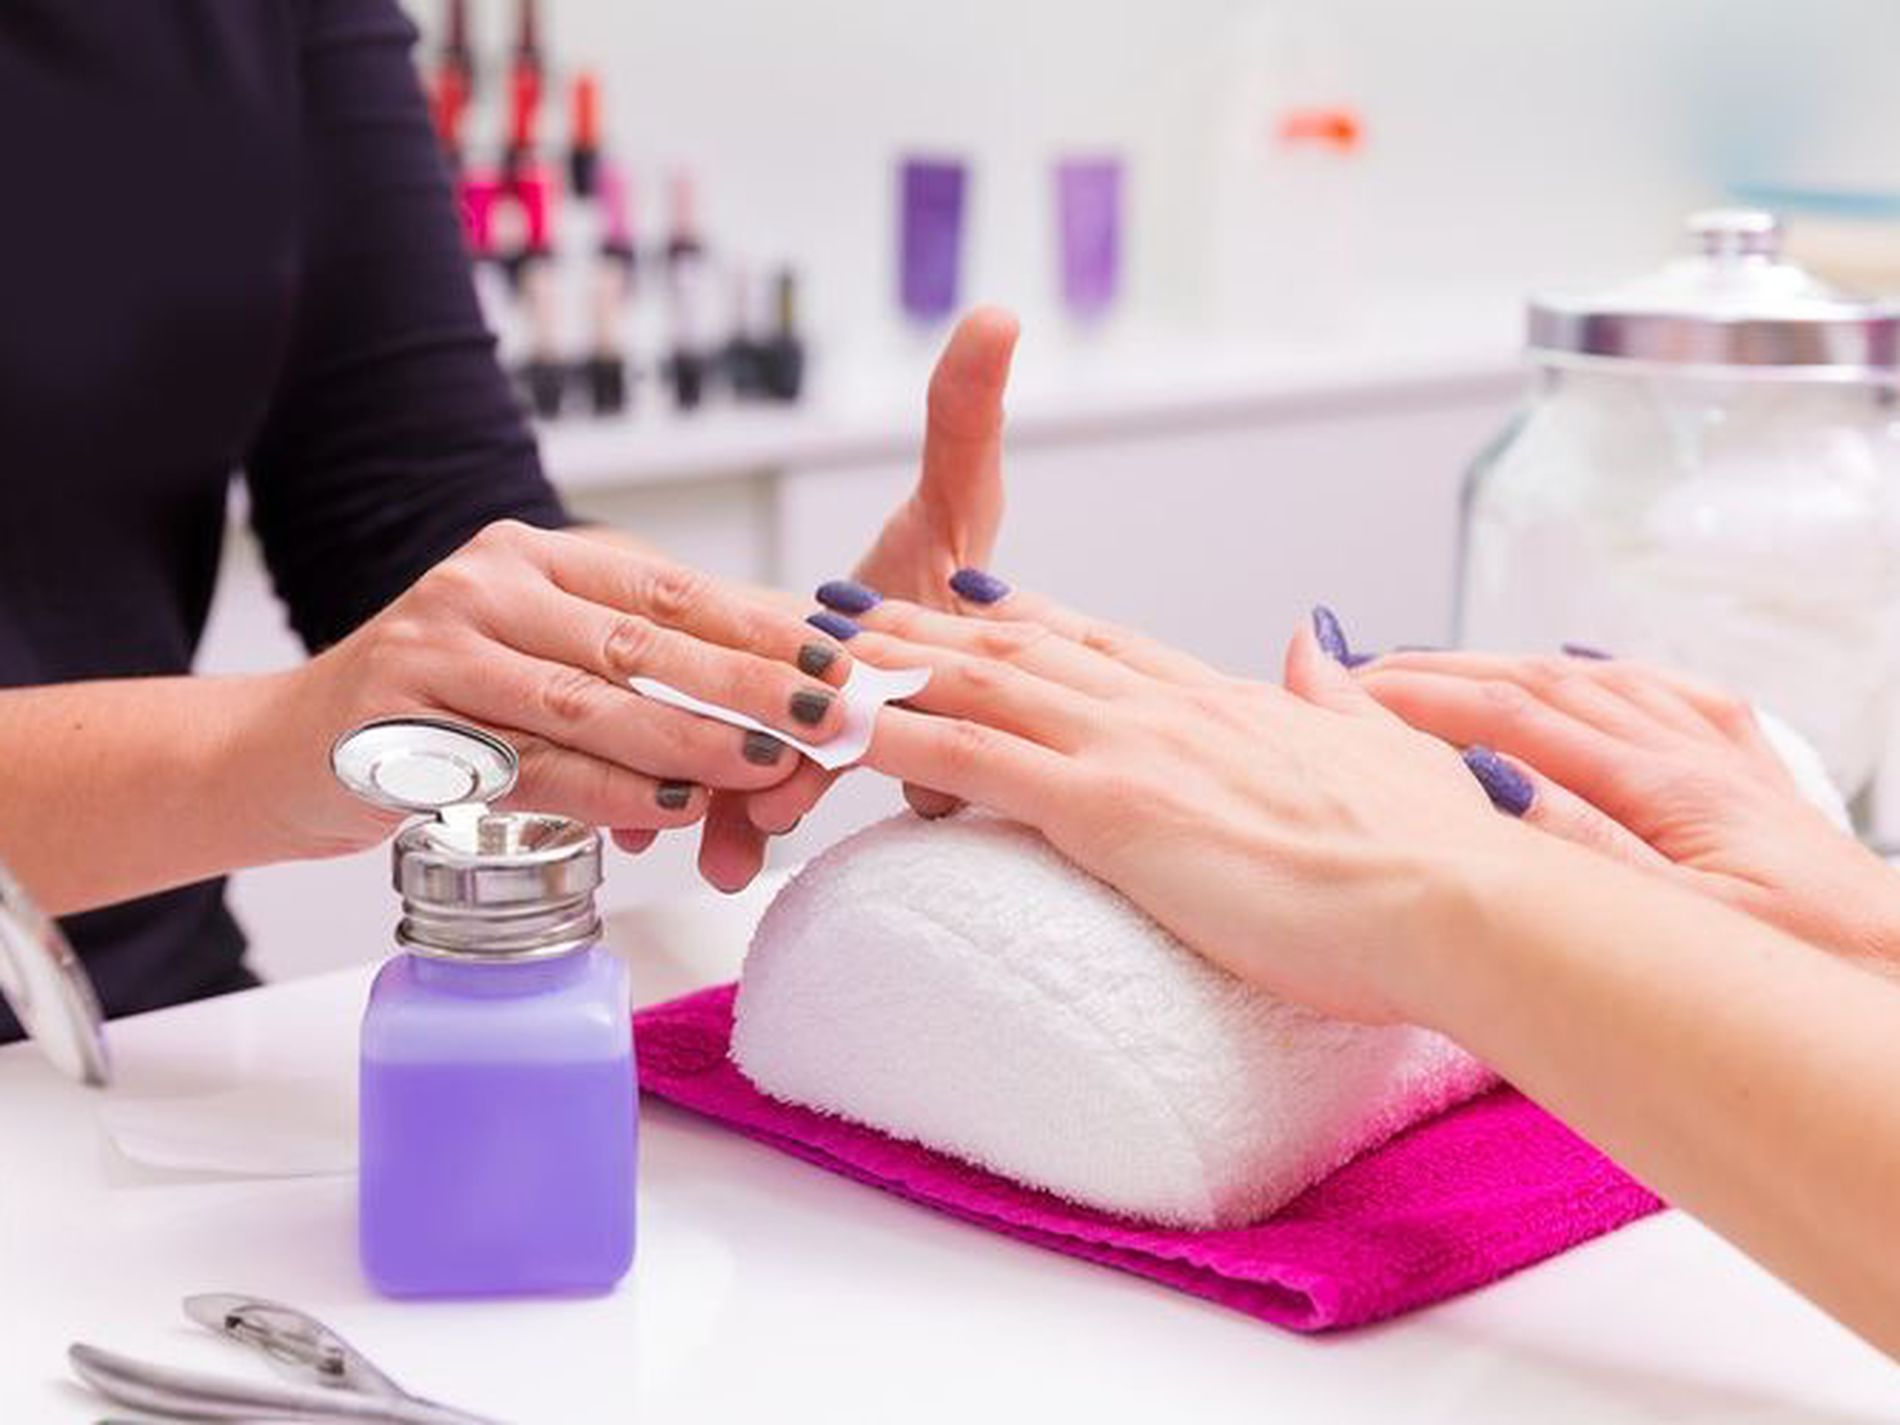 XKR2020096 Lower North Shore Shopping Centre  Nail & beauty - Top location - Well established - Under management